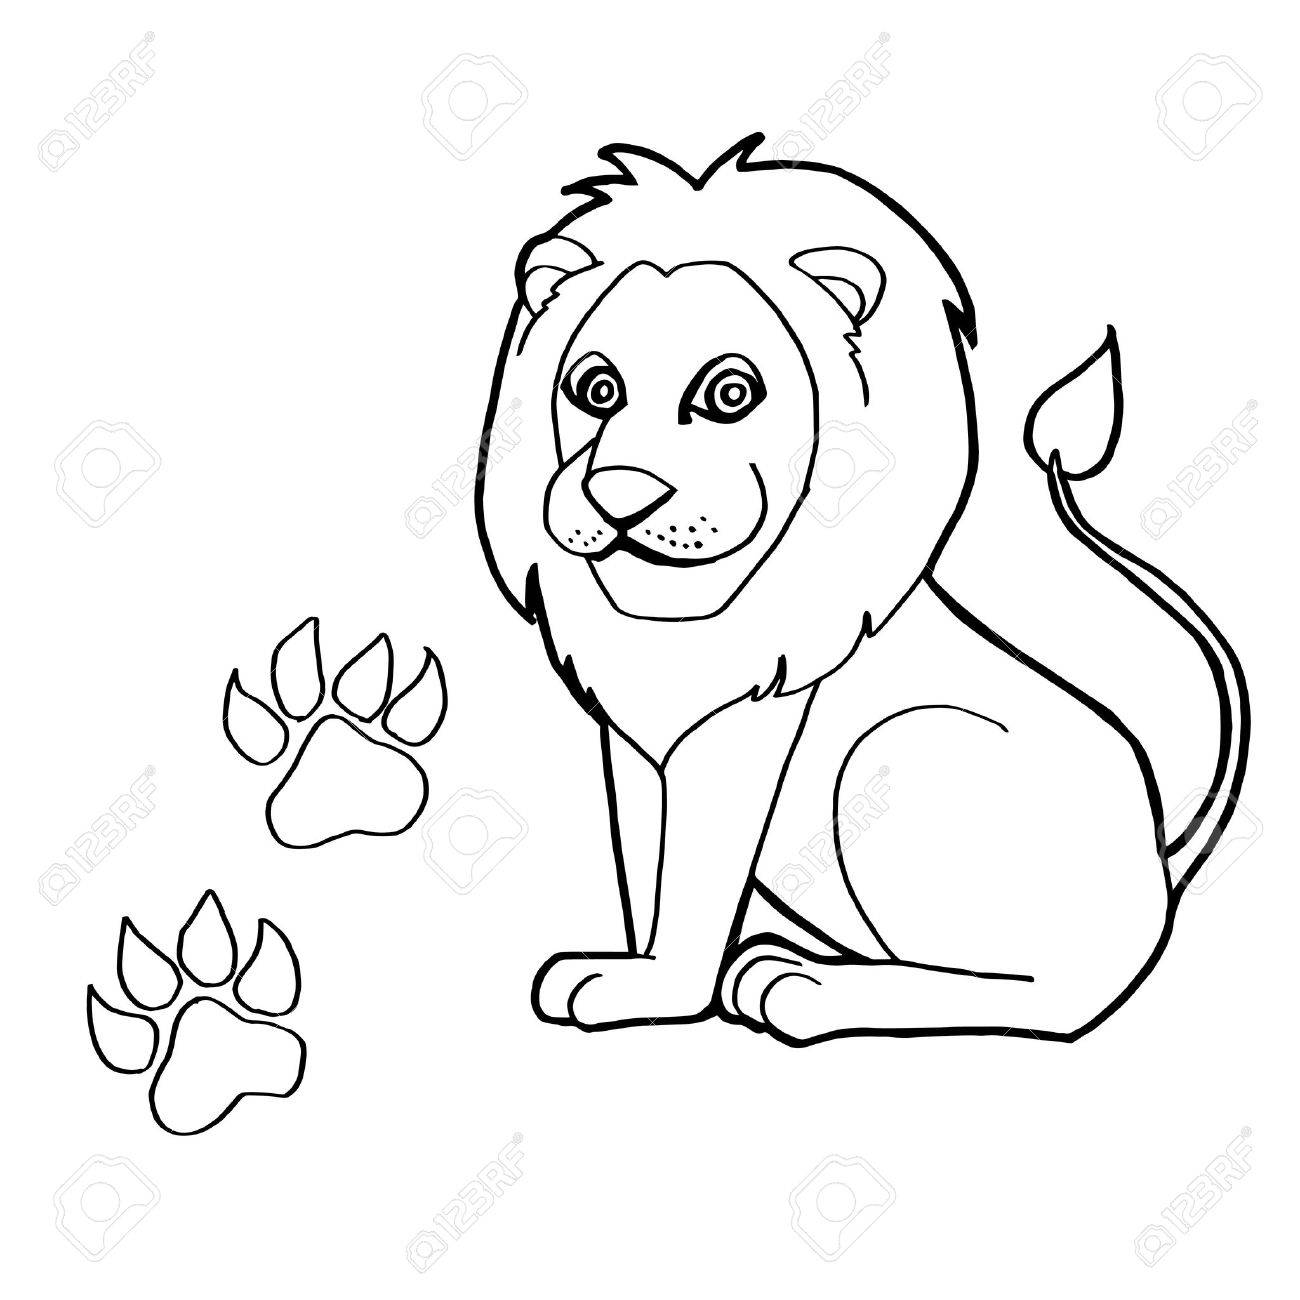 paw print with lions coloring pages royalty free cliparts vectors